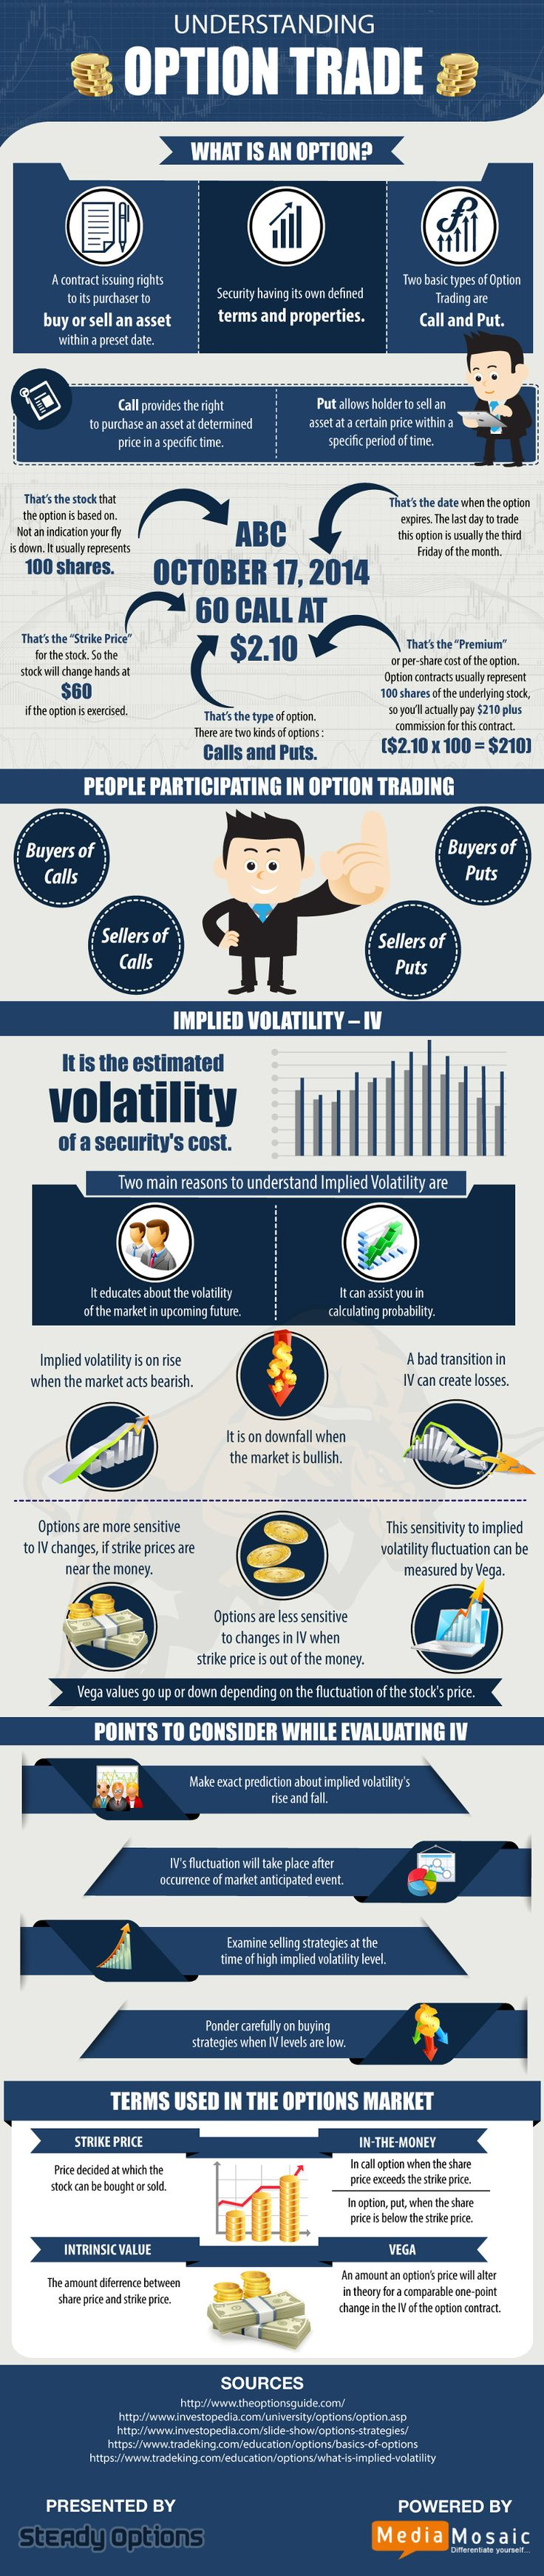 binary options info graphics design